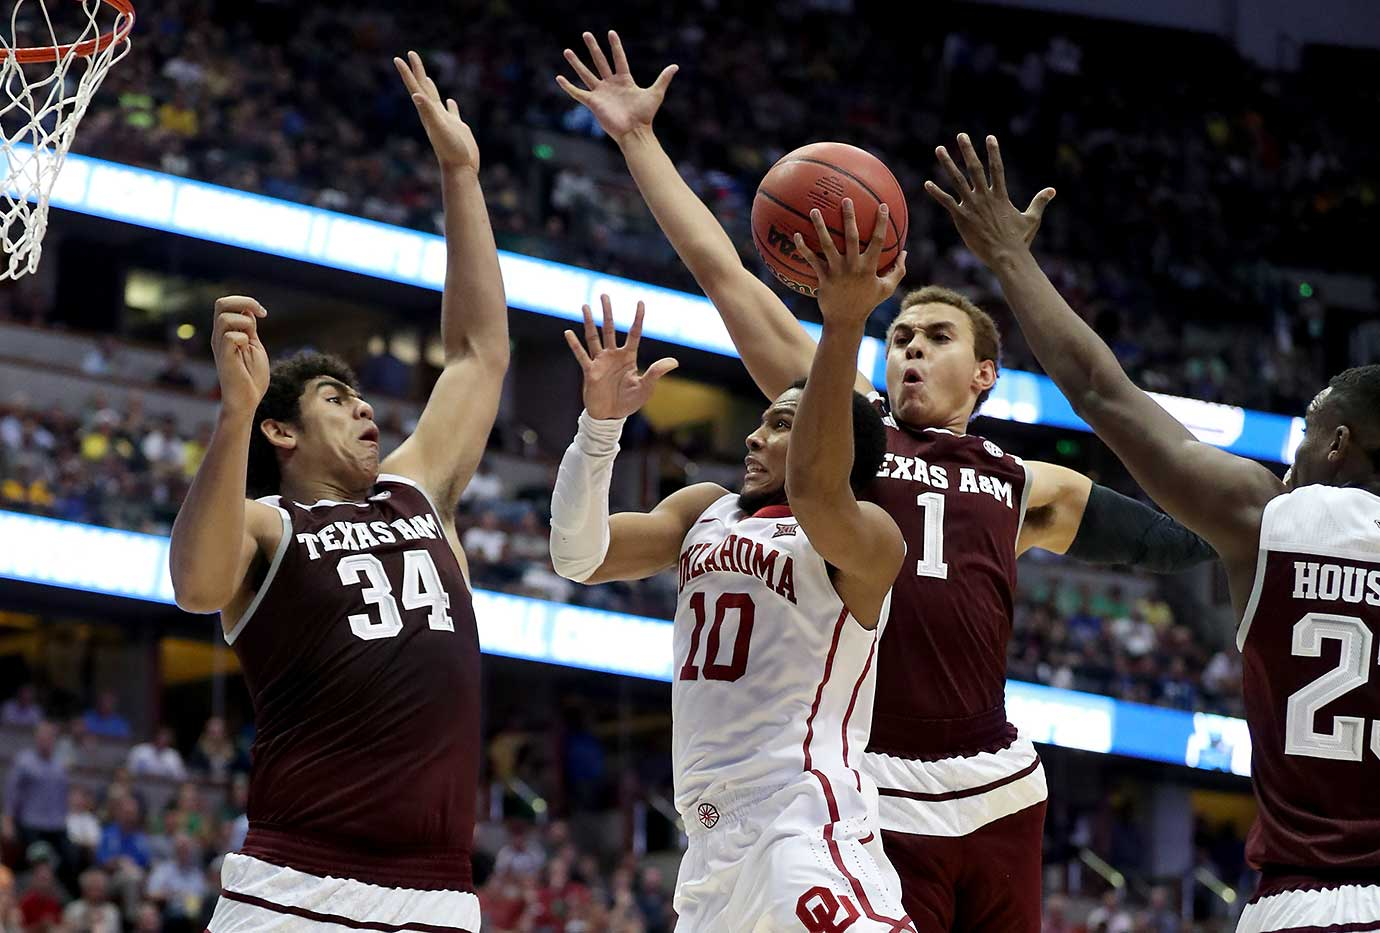 Jordan Woodard of Oklahoma goes up for a shot against Tyler Davis (34) and DJ Hogg of Texas A&M.